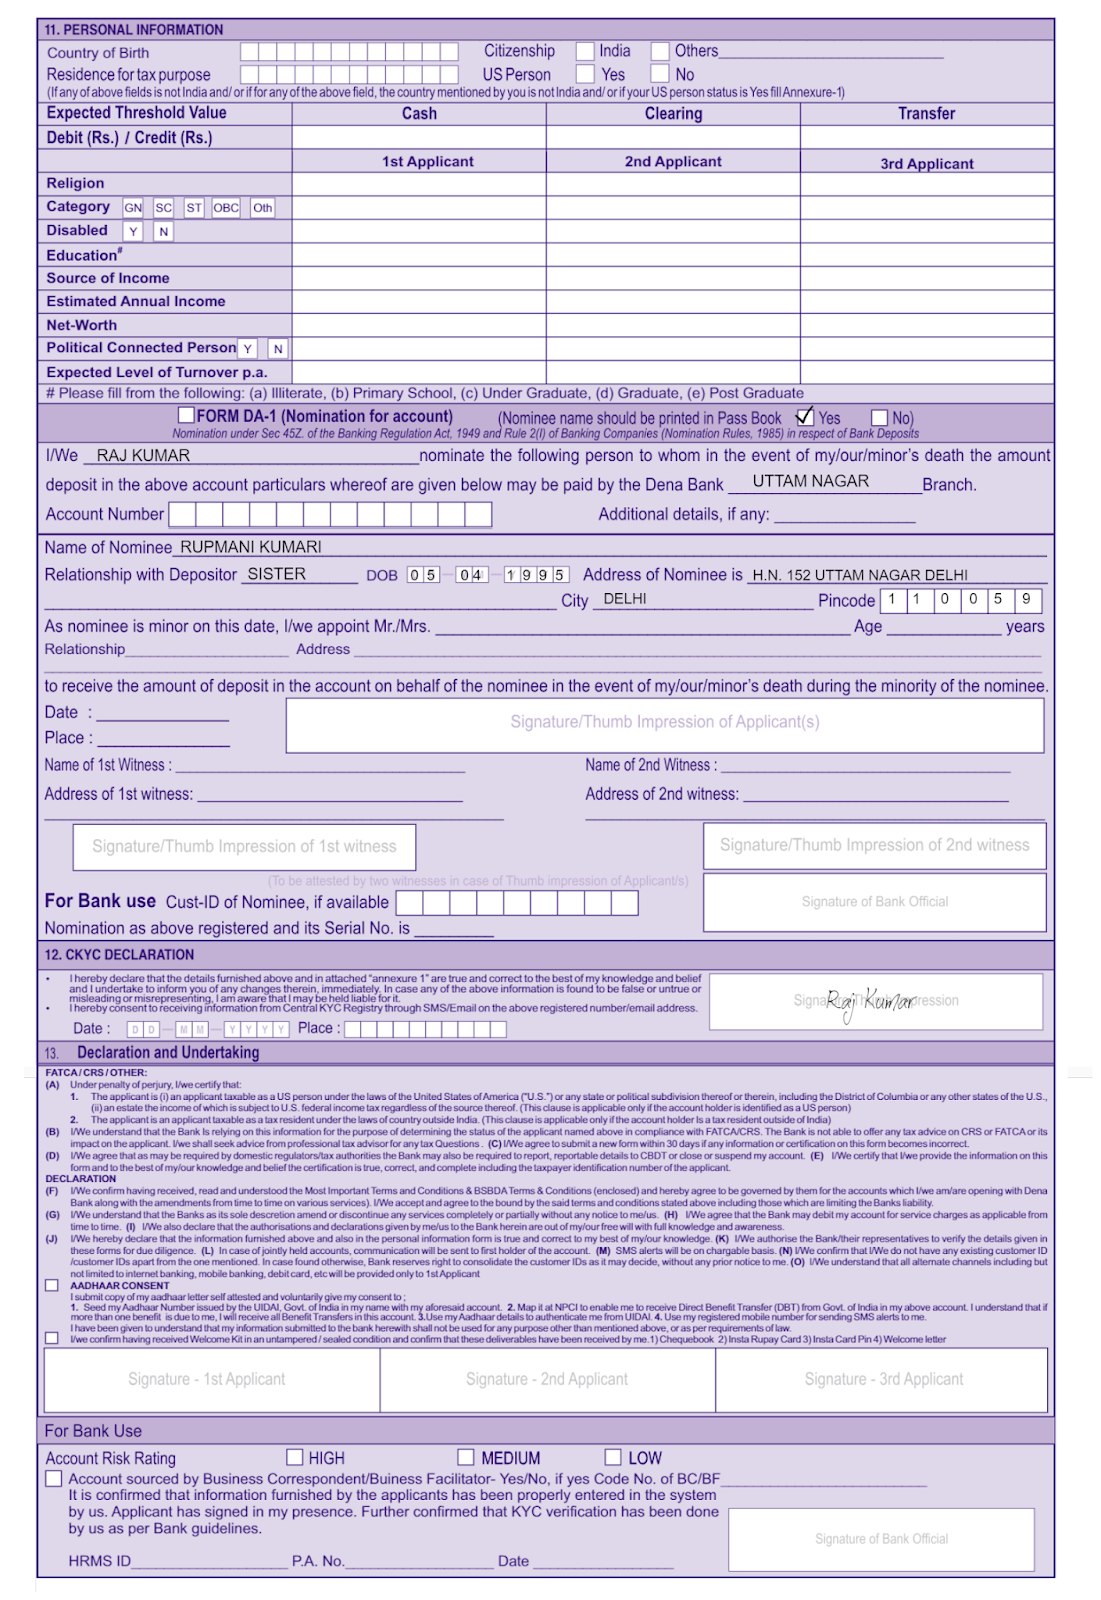 02 Online Form Fill Up Job In India on